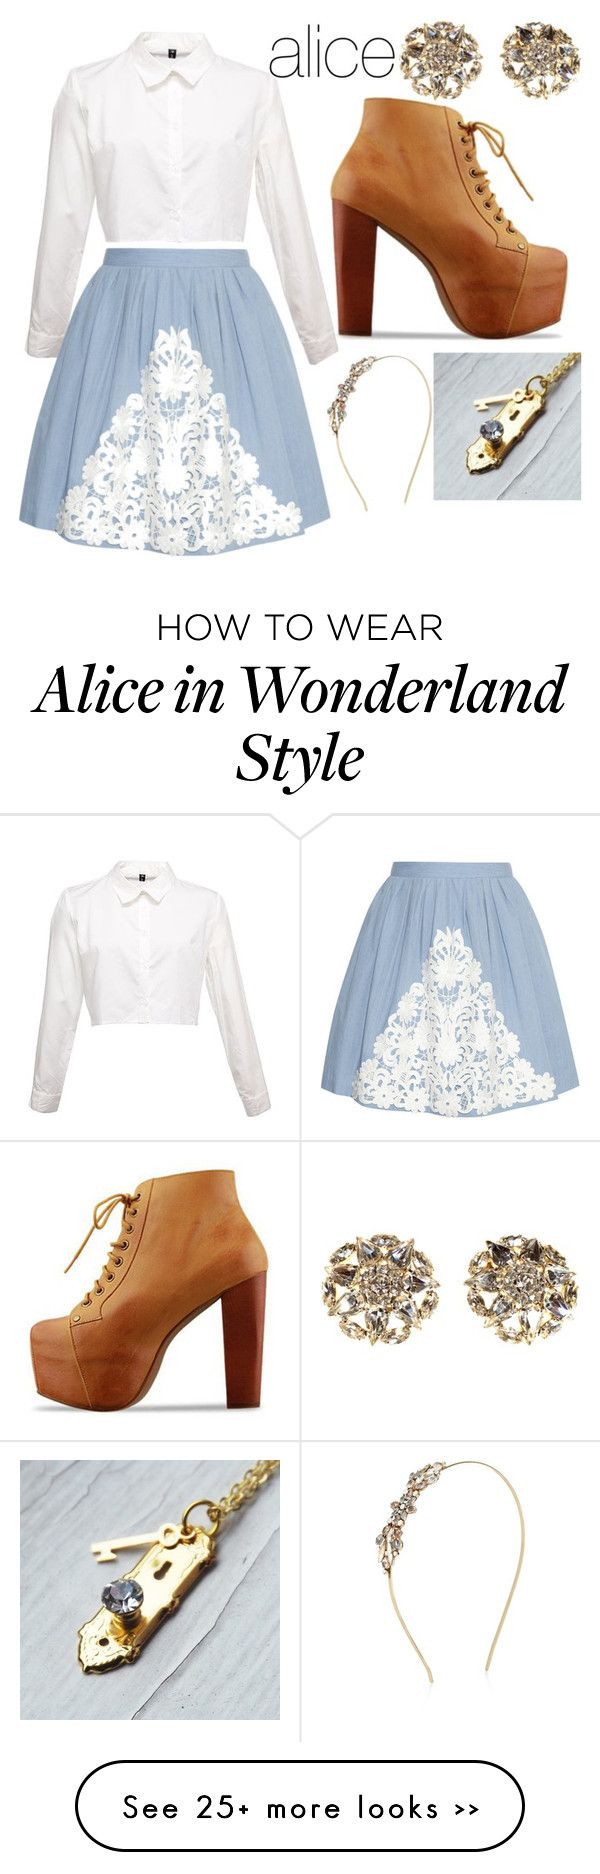 """alice"" by danayd on Polyvore featuring Boutique Moschino, Accessorize and Alice Joseph Vintage"